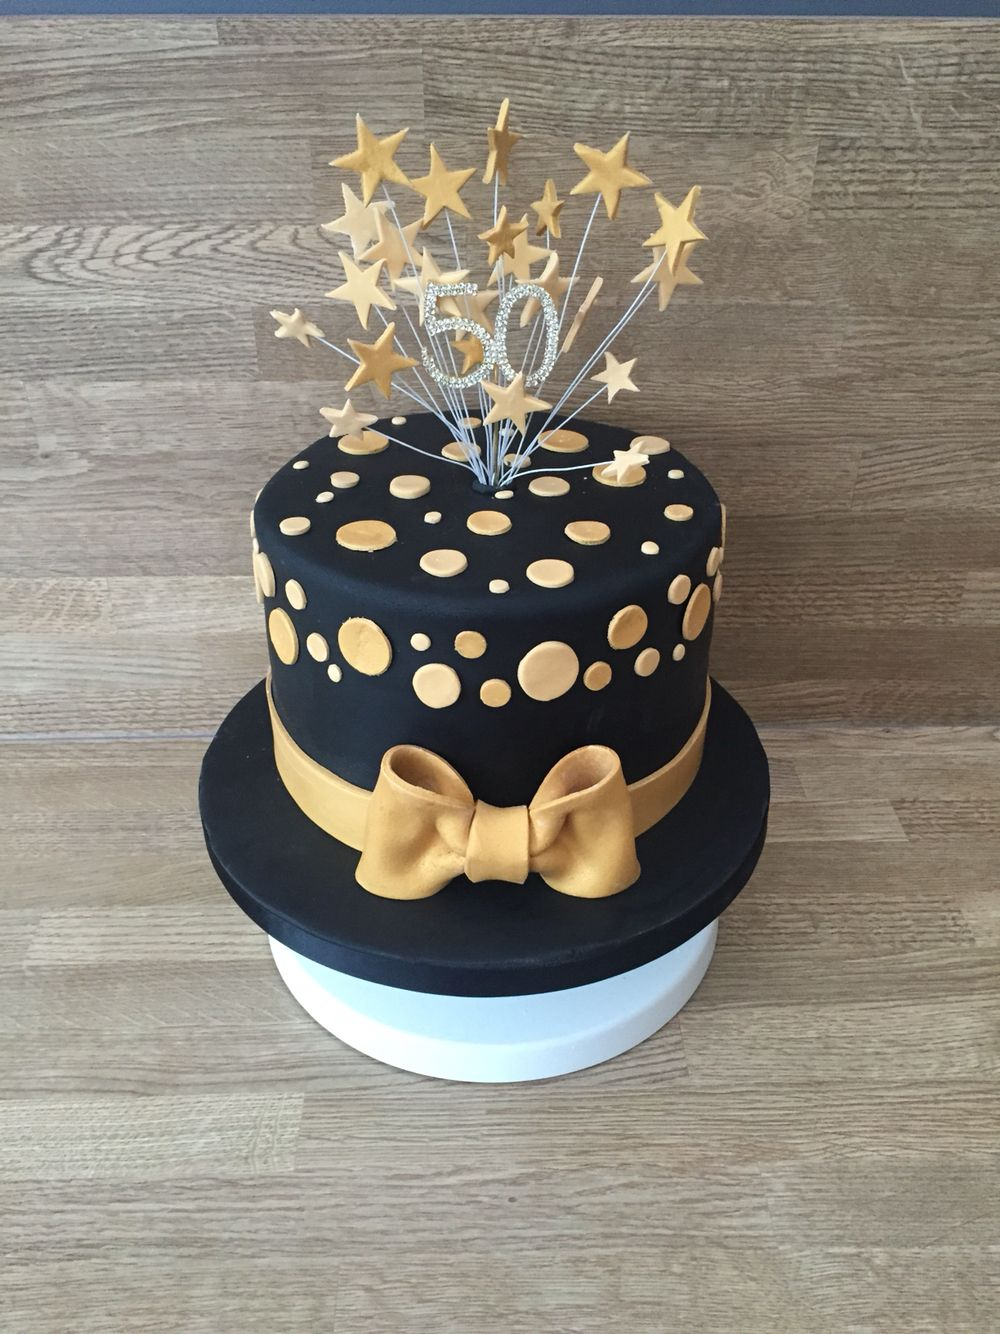 Black And Gold Cake Golden Birthday Cakes Black And Gold Birthday Cake Black And Gold Cake